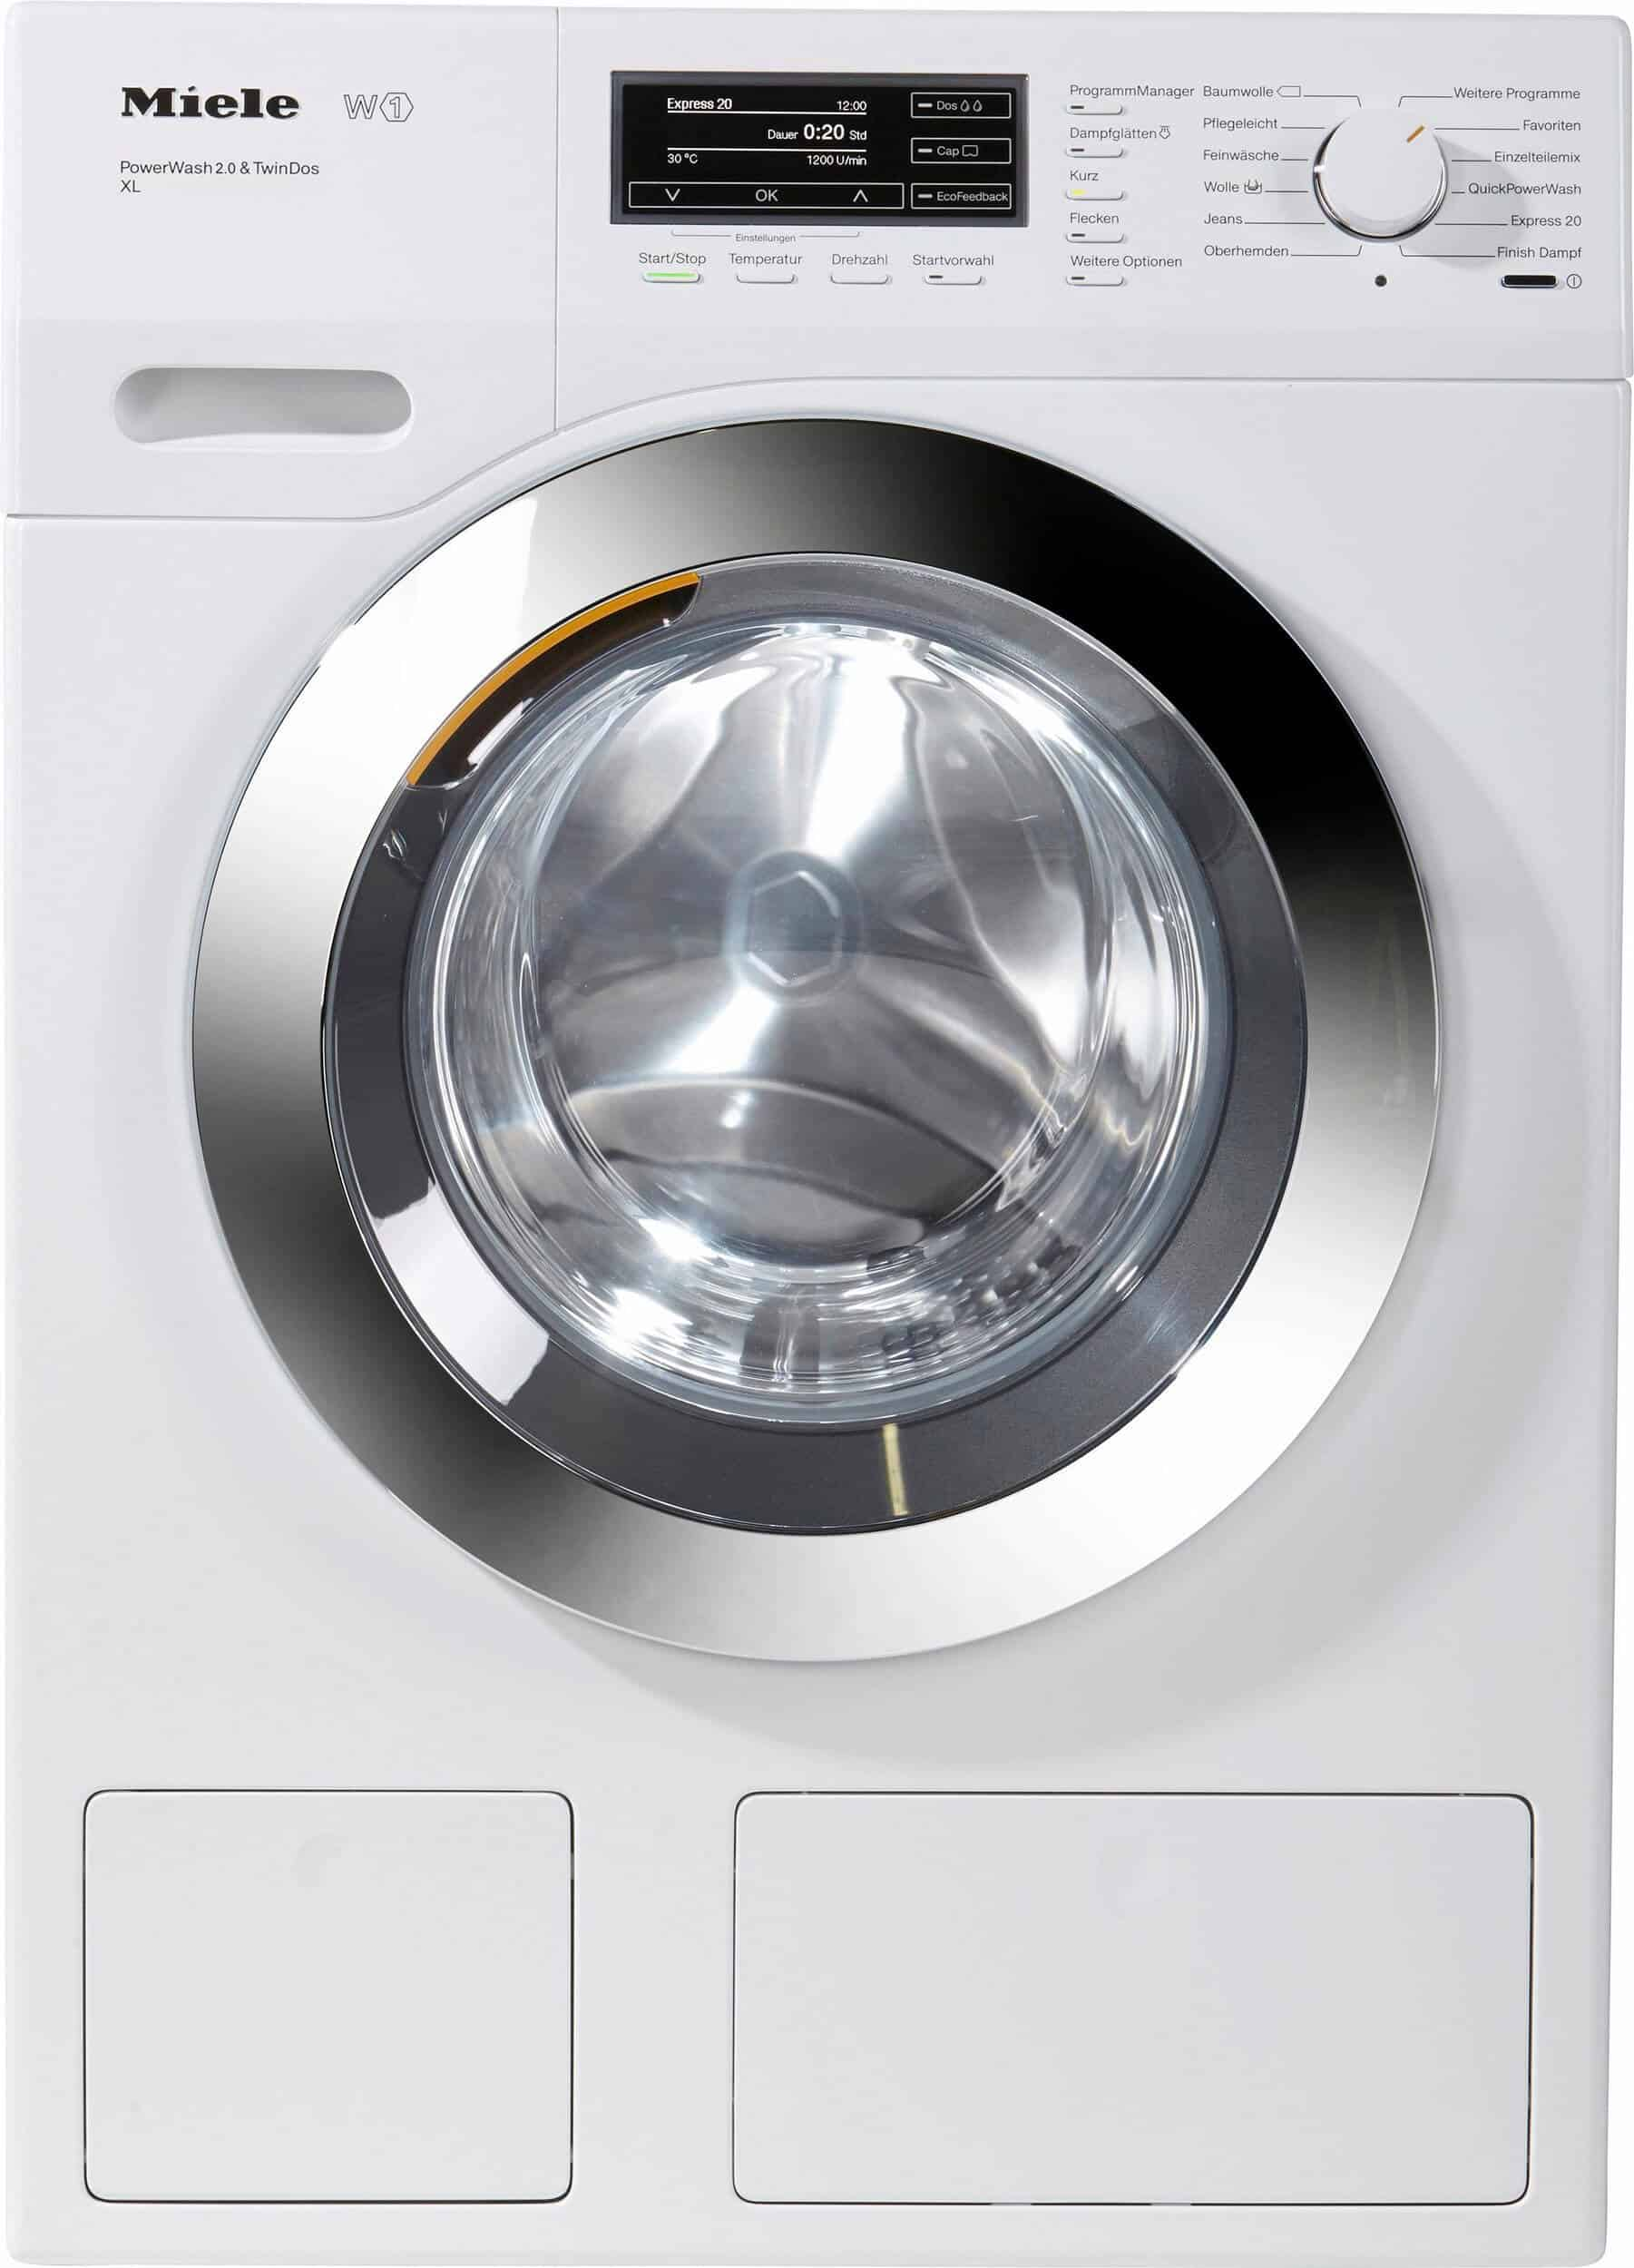 miele wkr 770 wps manual